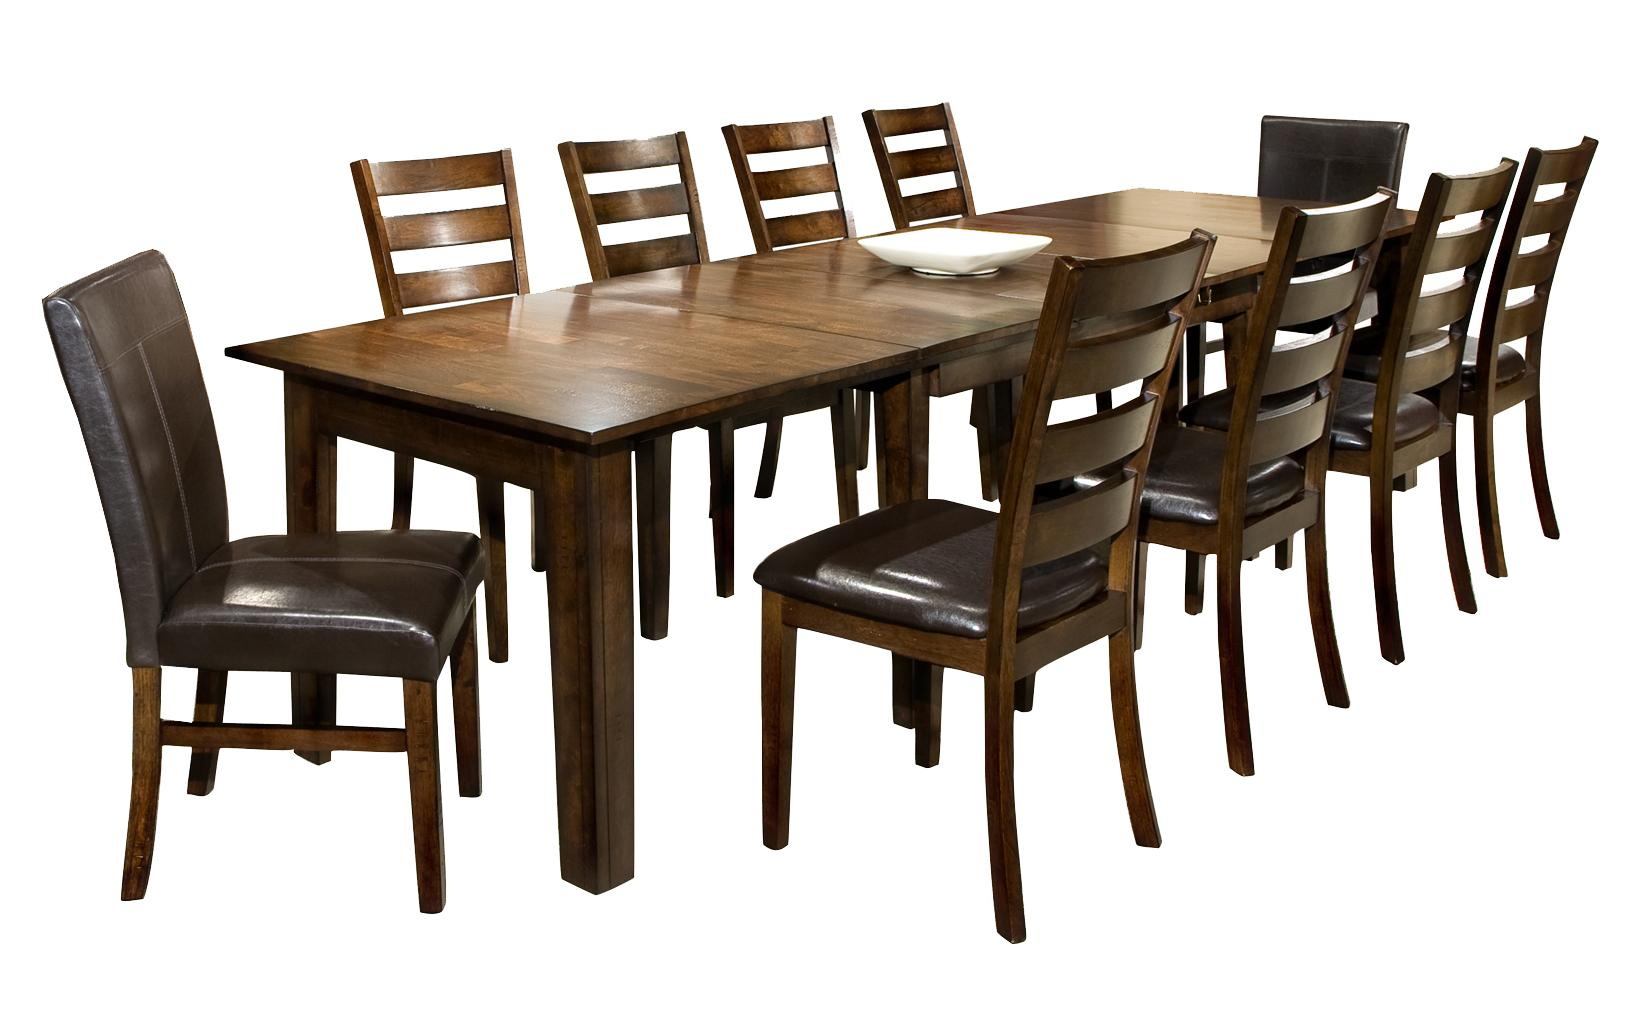 Kona 11-Piece Dining Set by Intercon at Rife's Home Furniture